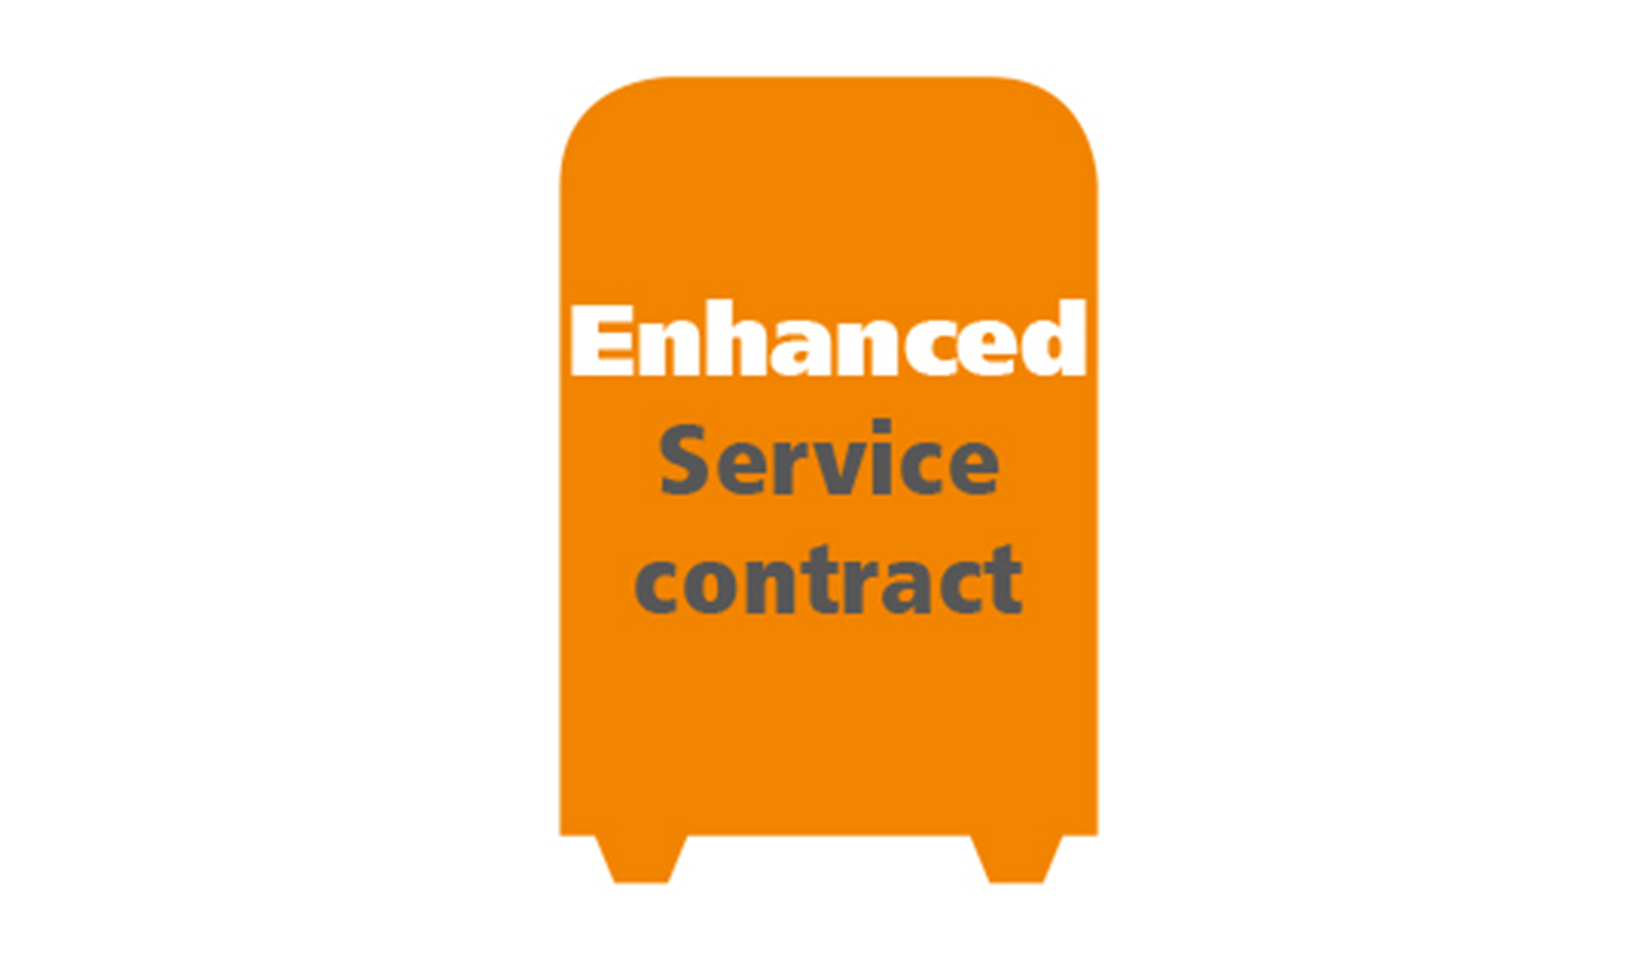 Enhanced service contract